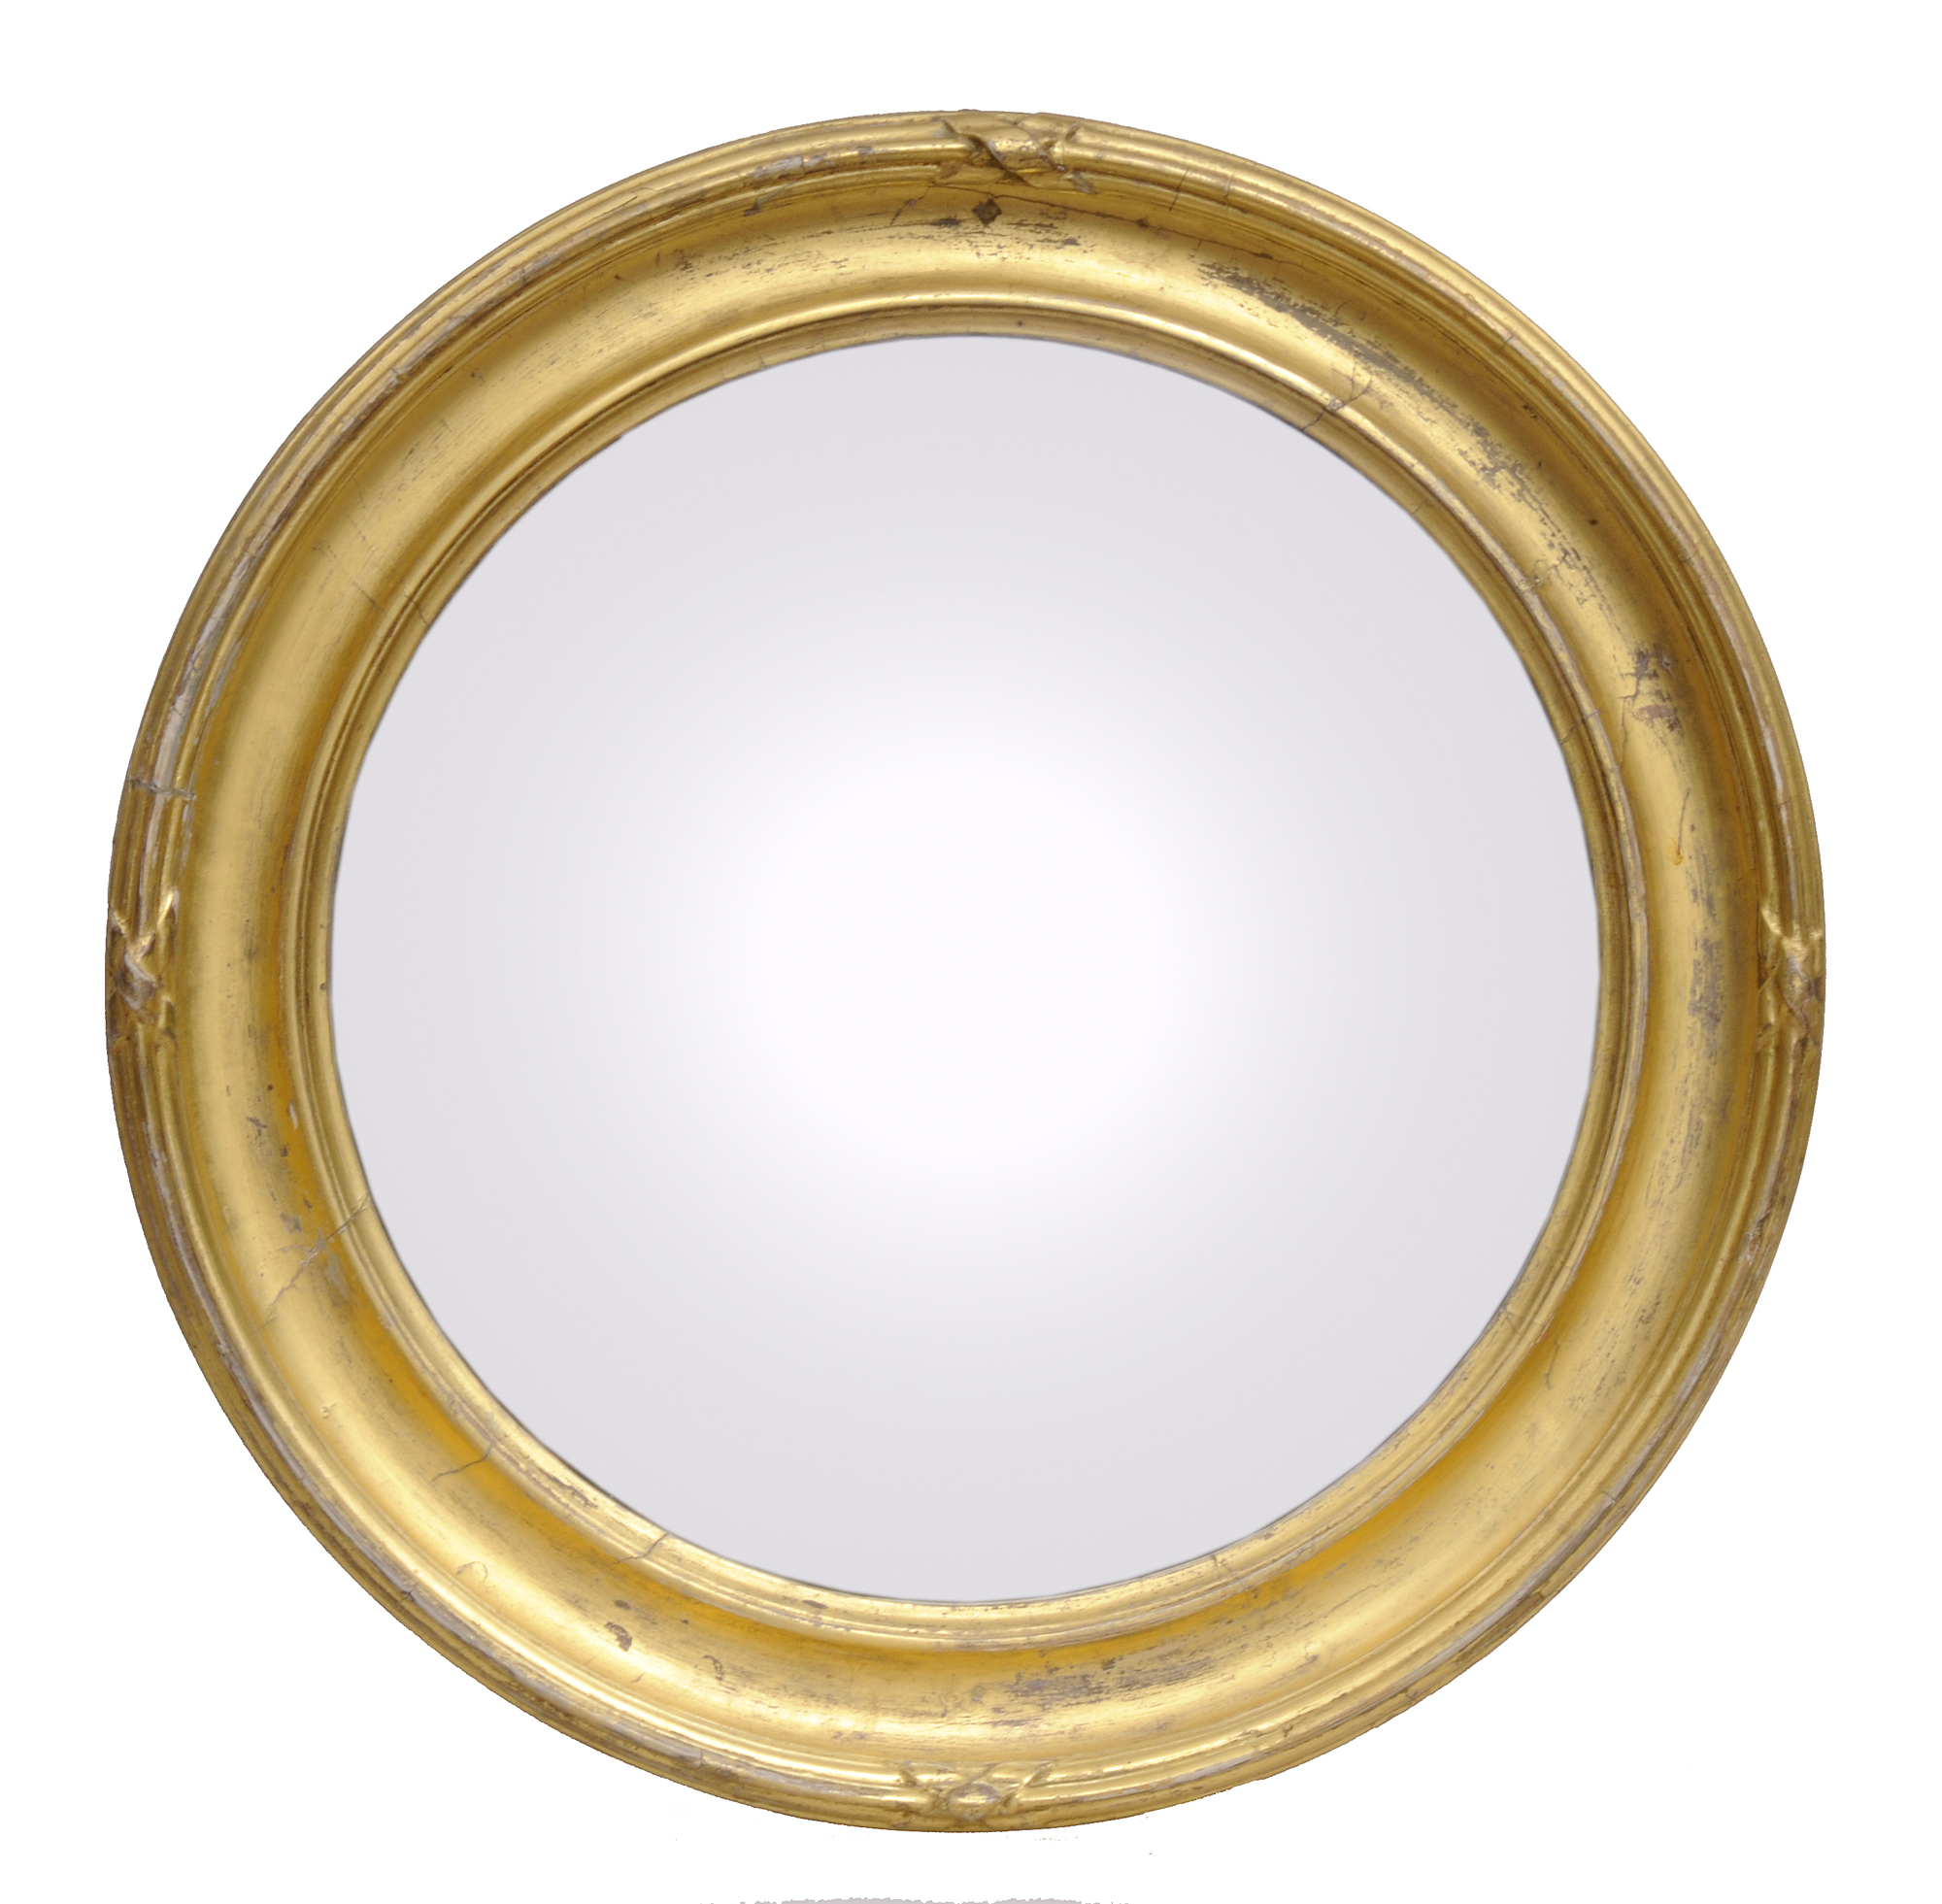 Antique Giltwood Convex Mirror With Concave Frame